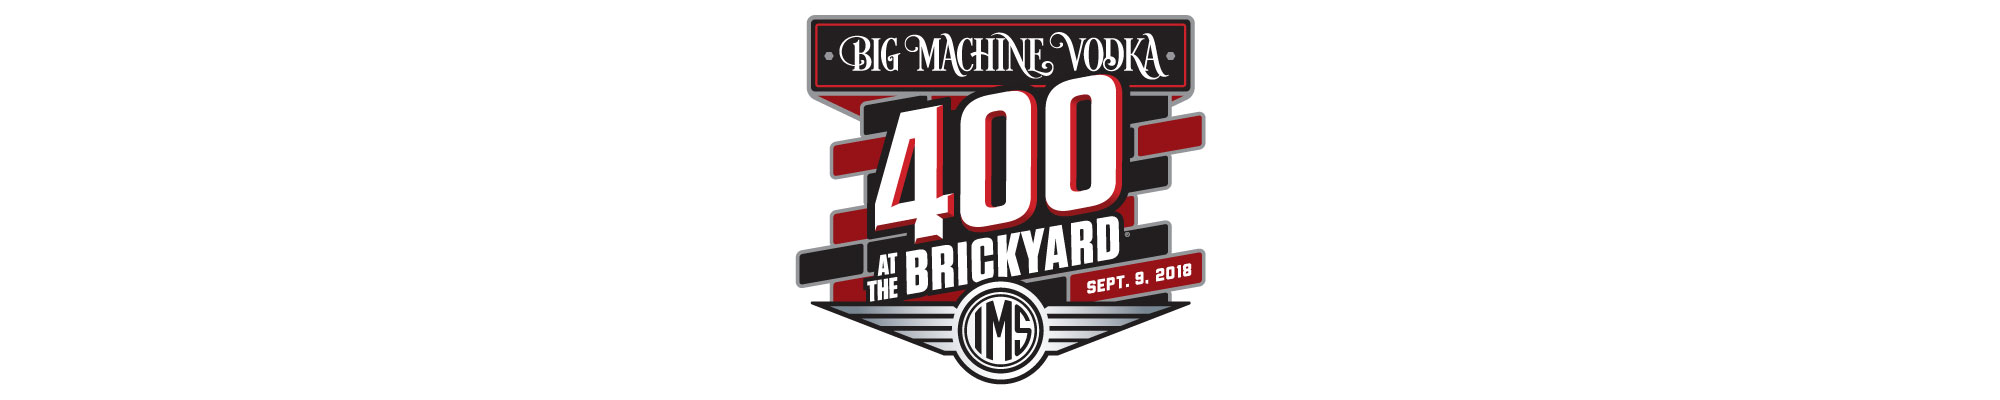 header-brickyard400-2018.jpg